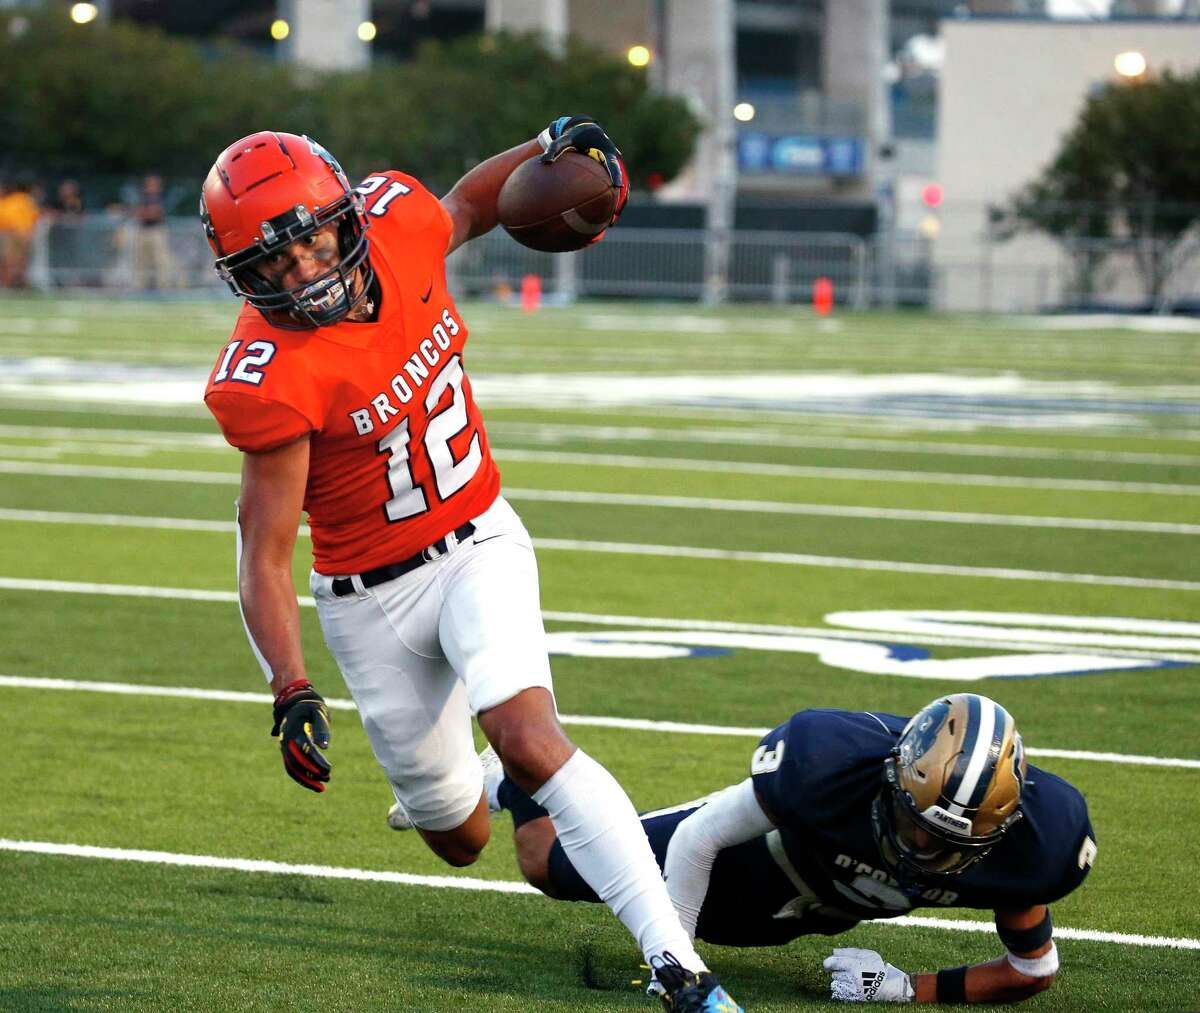 Brandeis Julian Yzaguirre(12) escapes a last tackler for their first touchdown. Brandeis defeated O'Connor 33-7 in boys football game on Thursday, Oct. 26, 2021 at Farris Stadium.